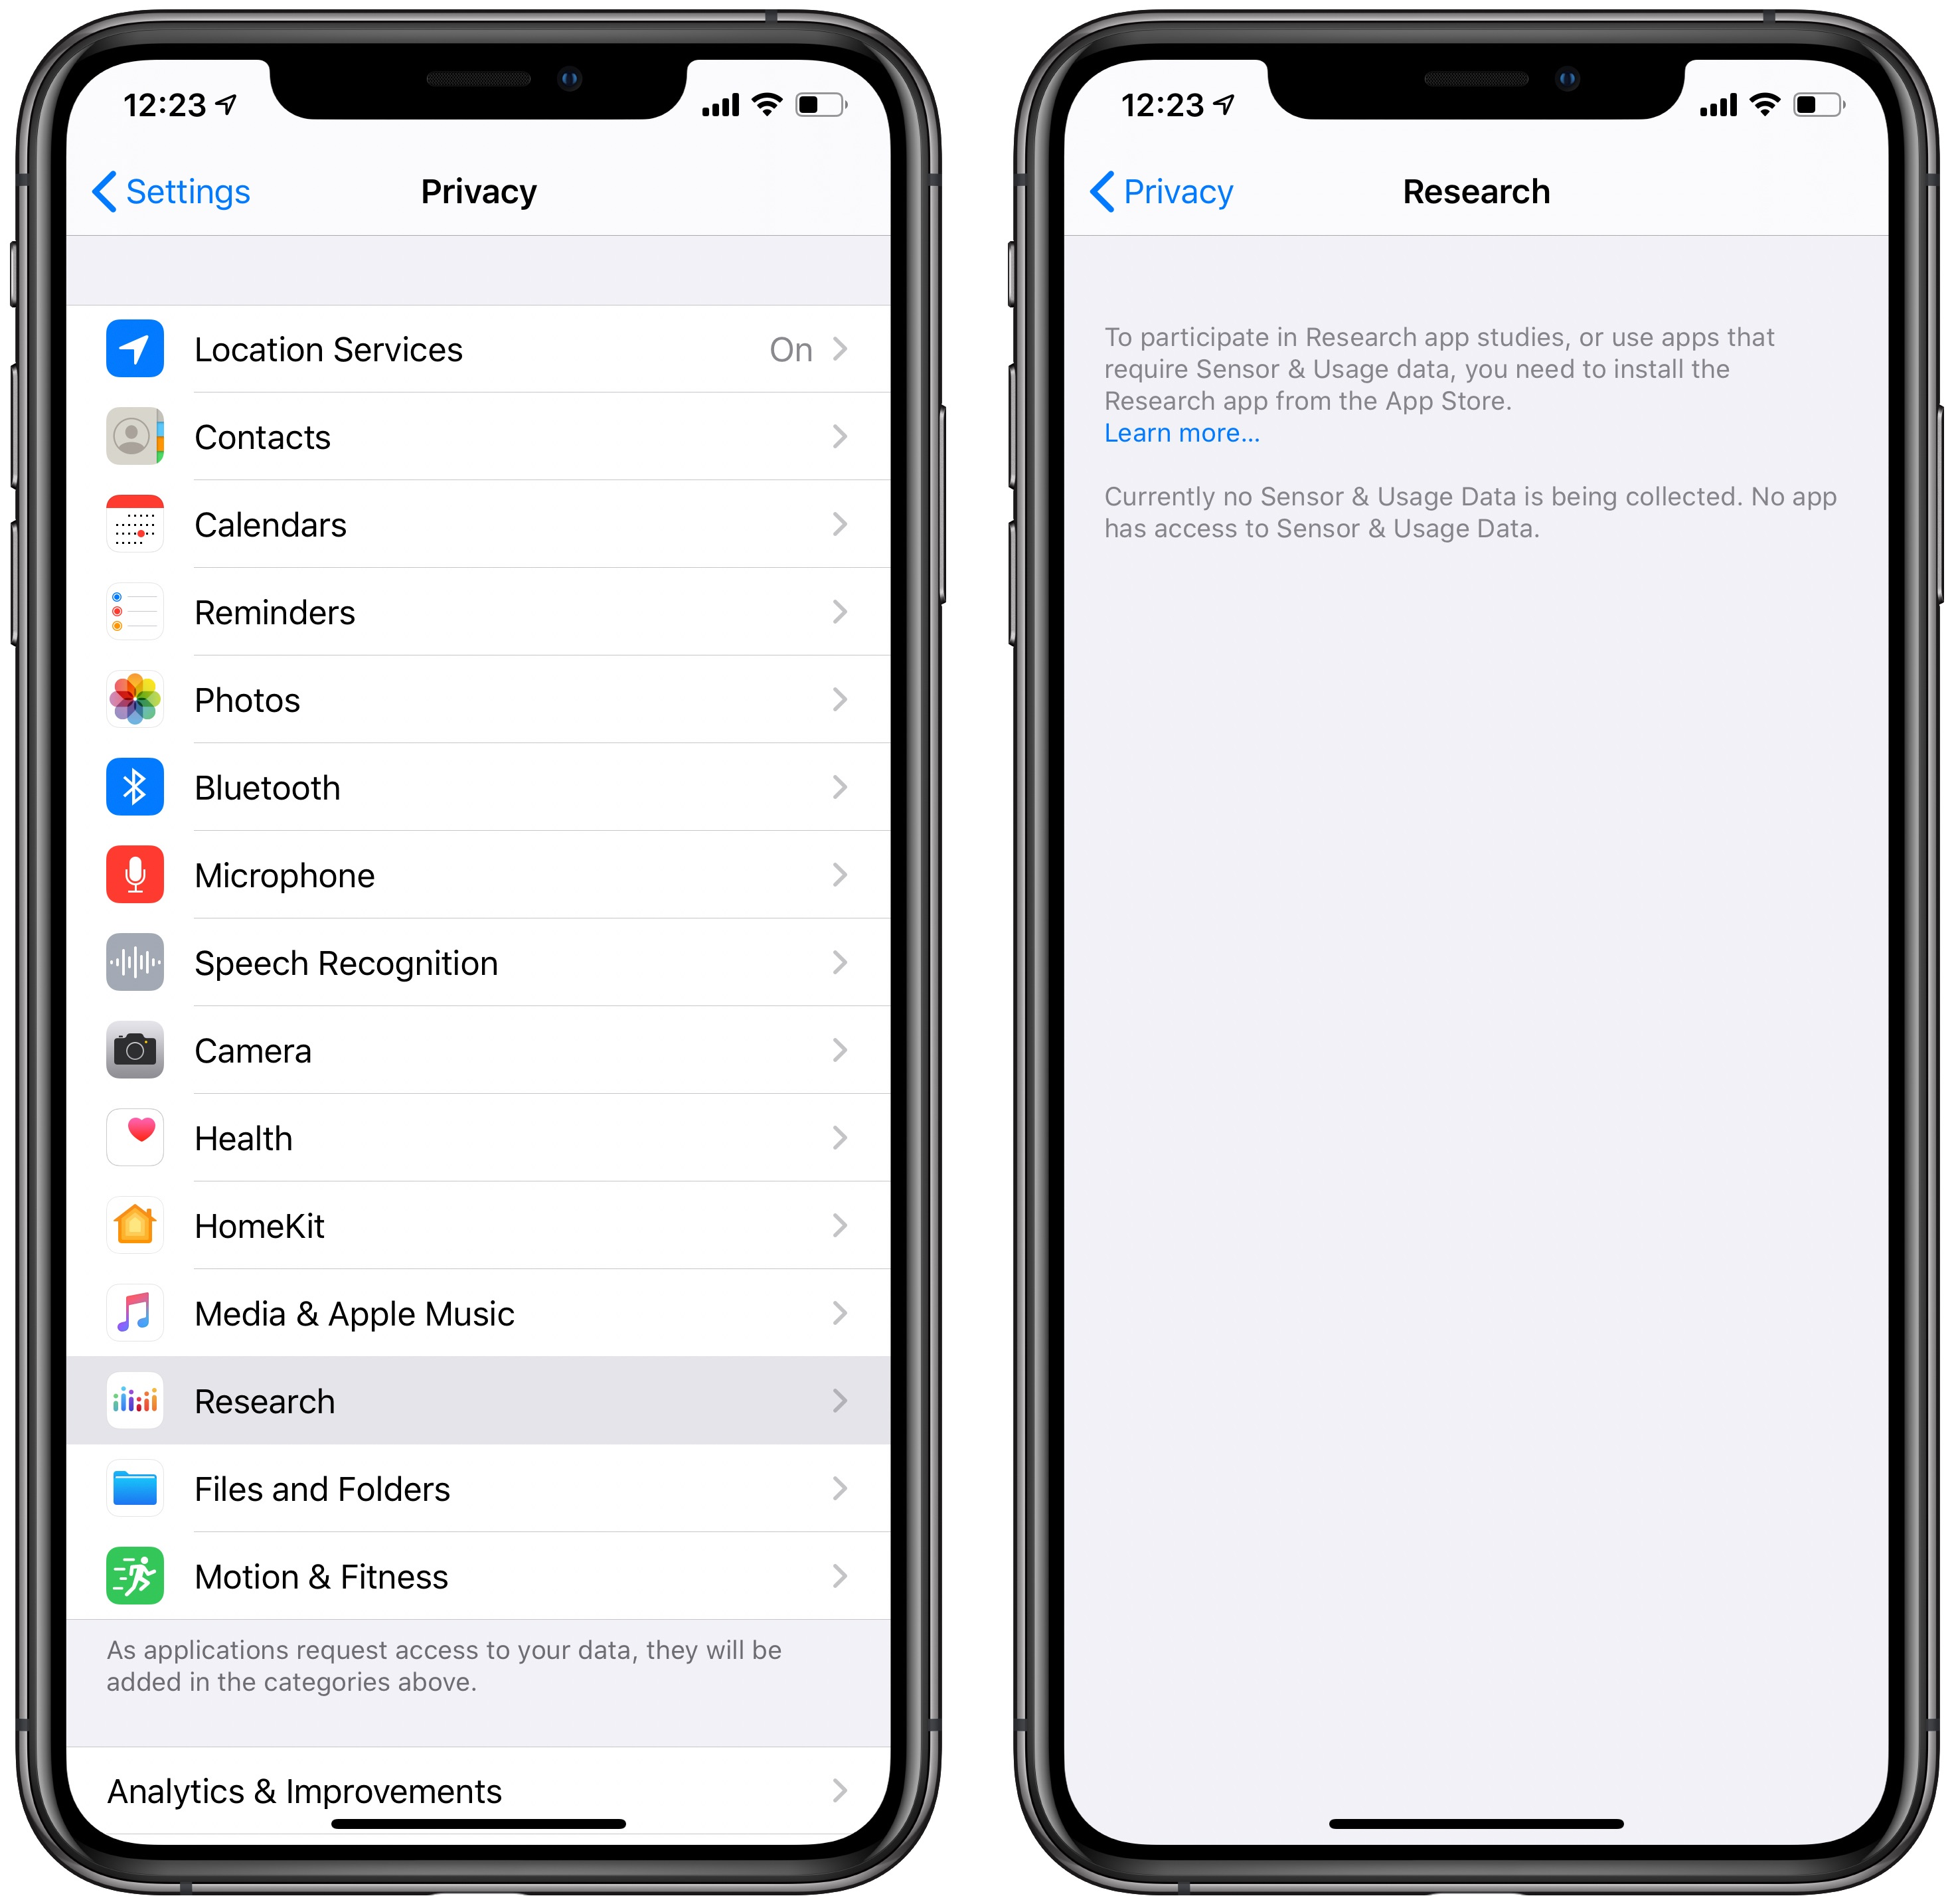 iOS 13.2 features tutorial: Research app privacy settings